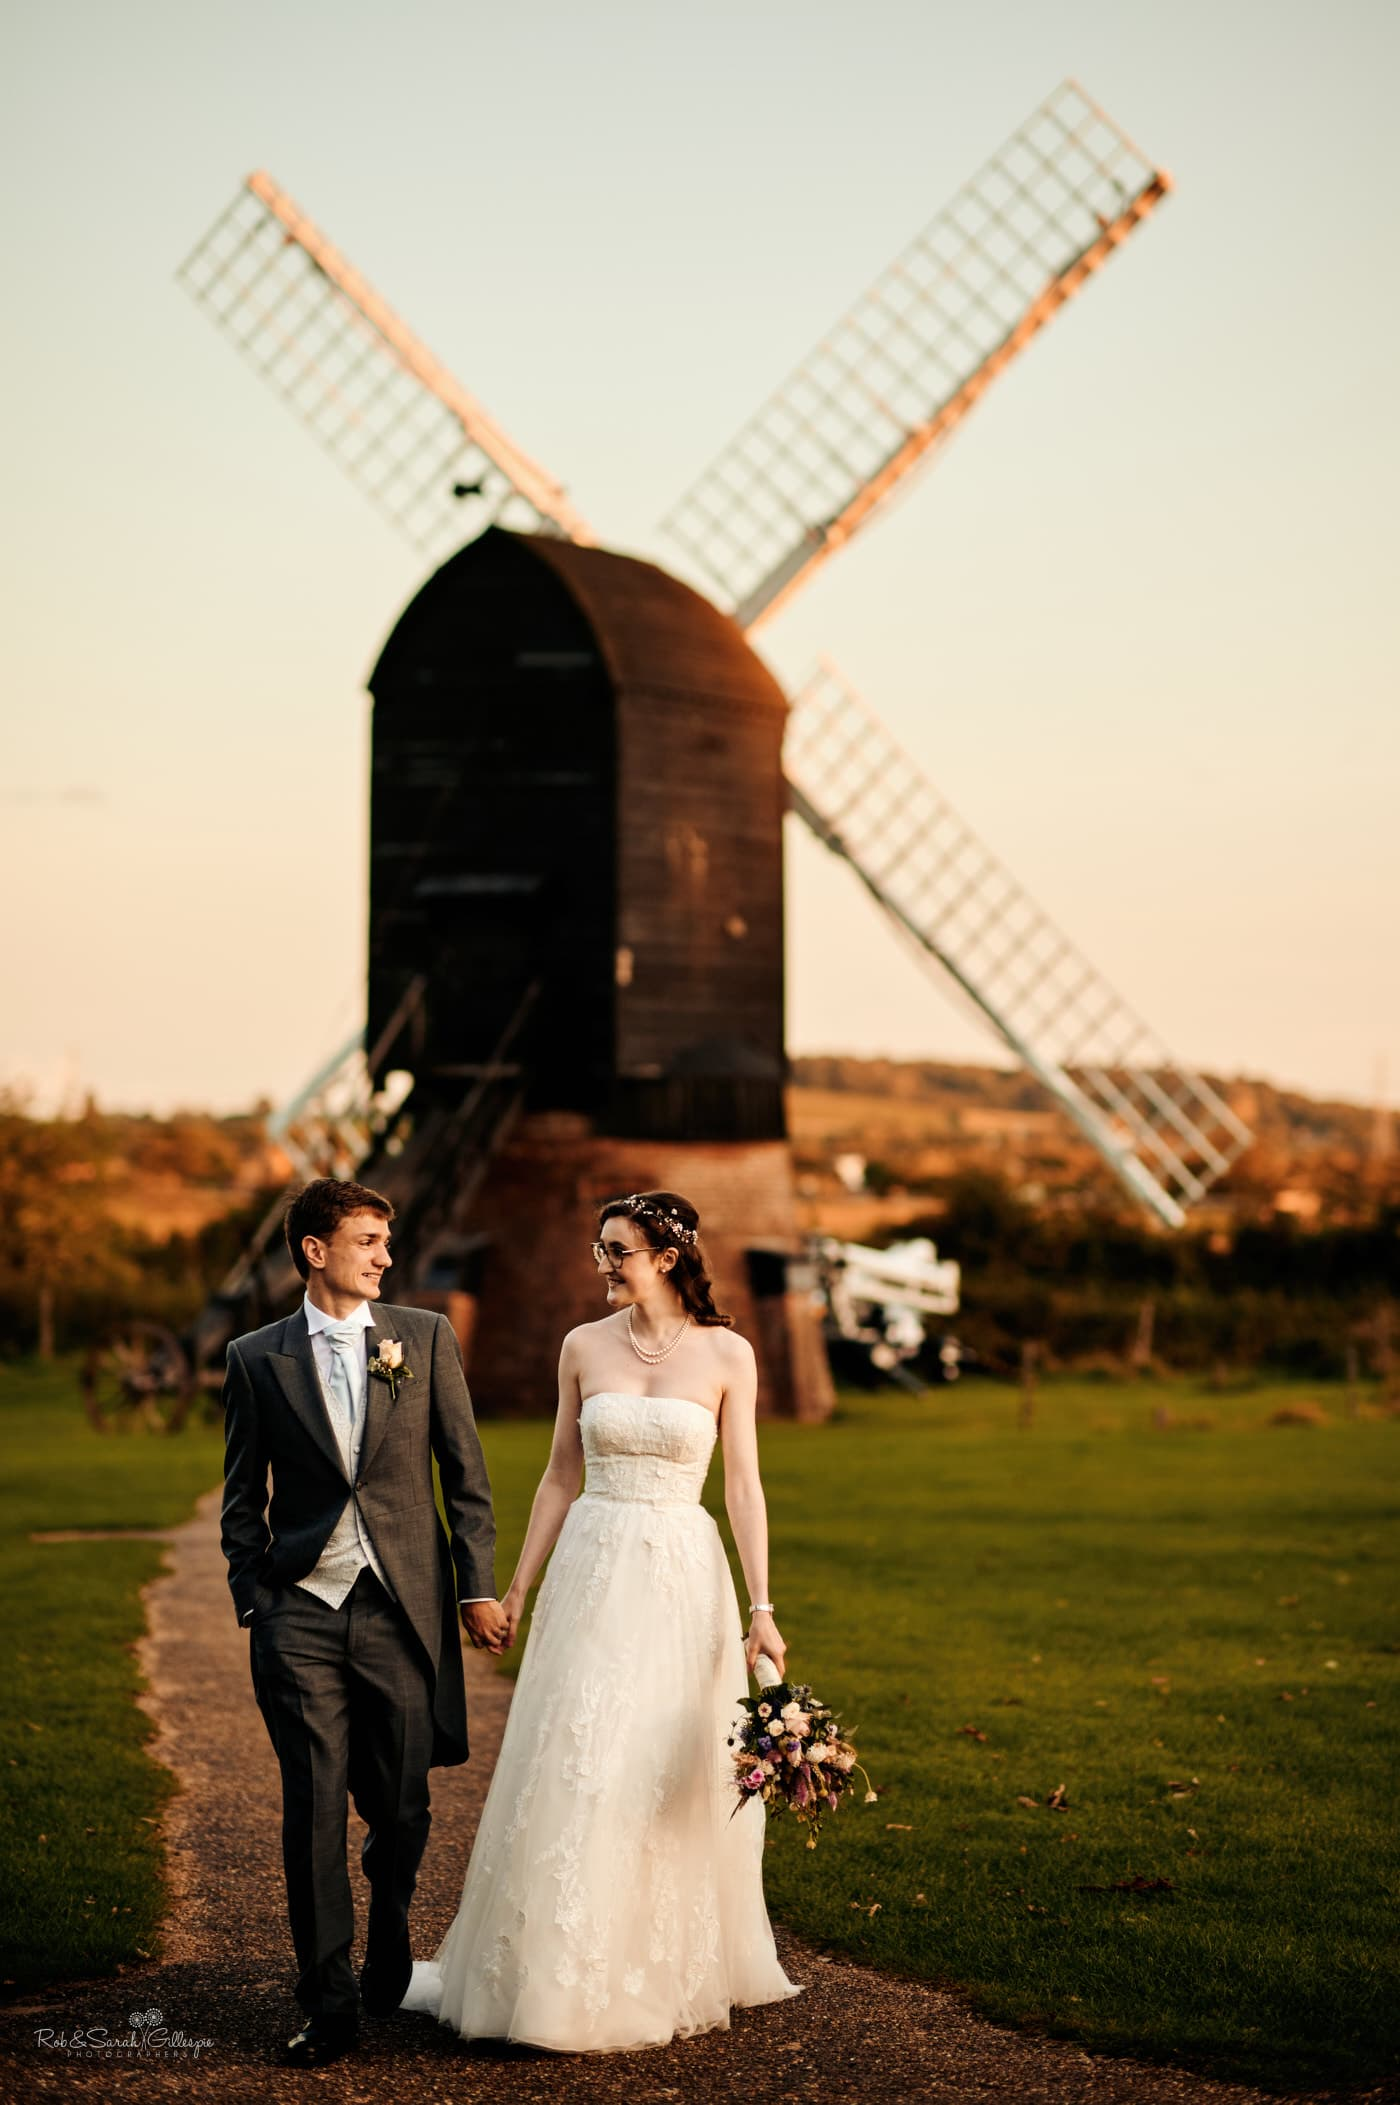 Bride and groom at Avoncroft Museum wedding, with old windmill in background